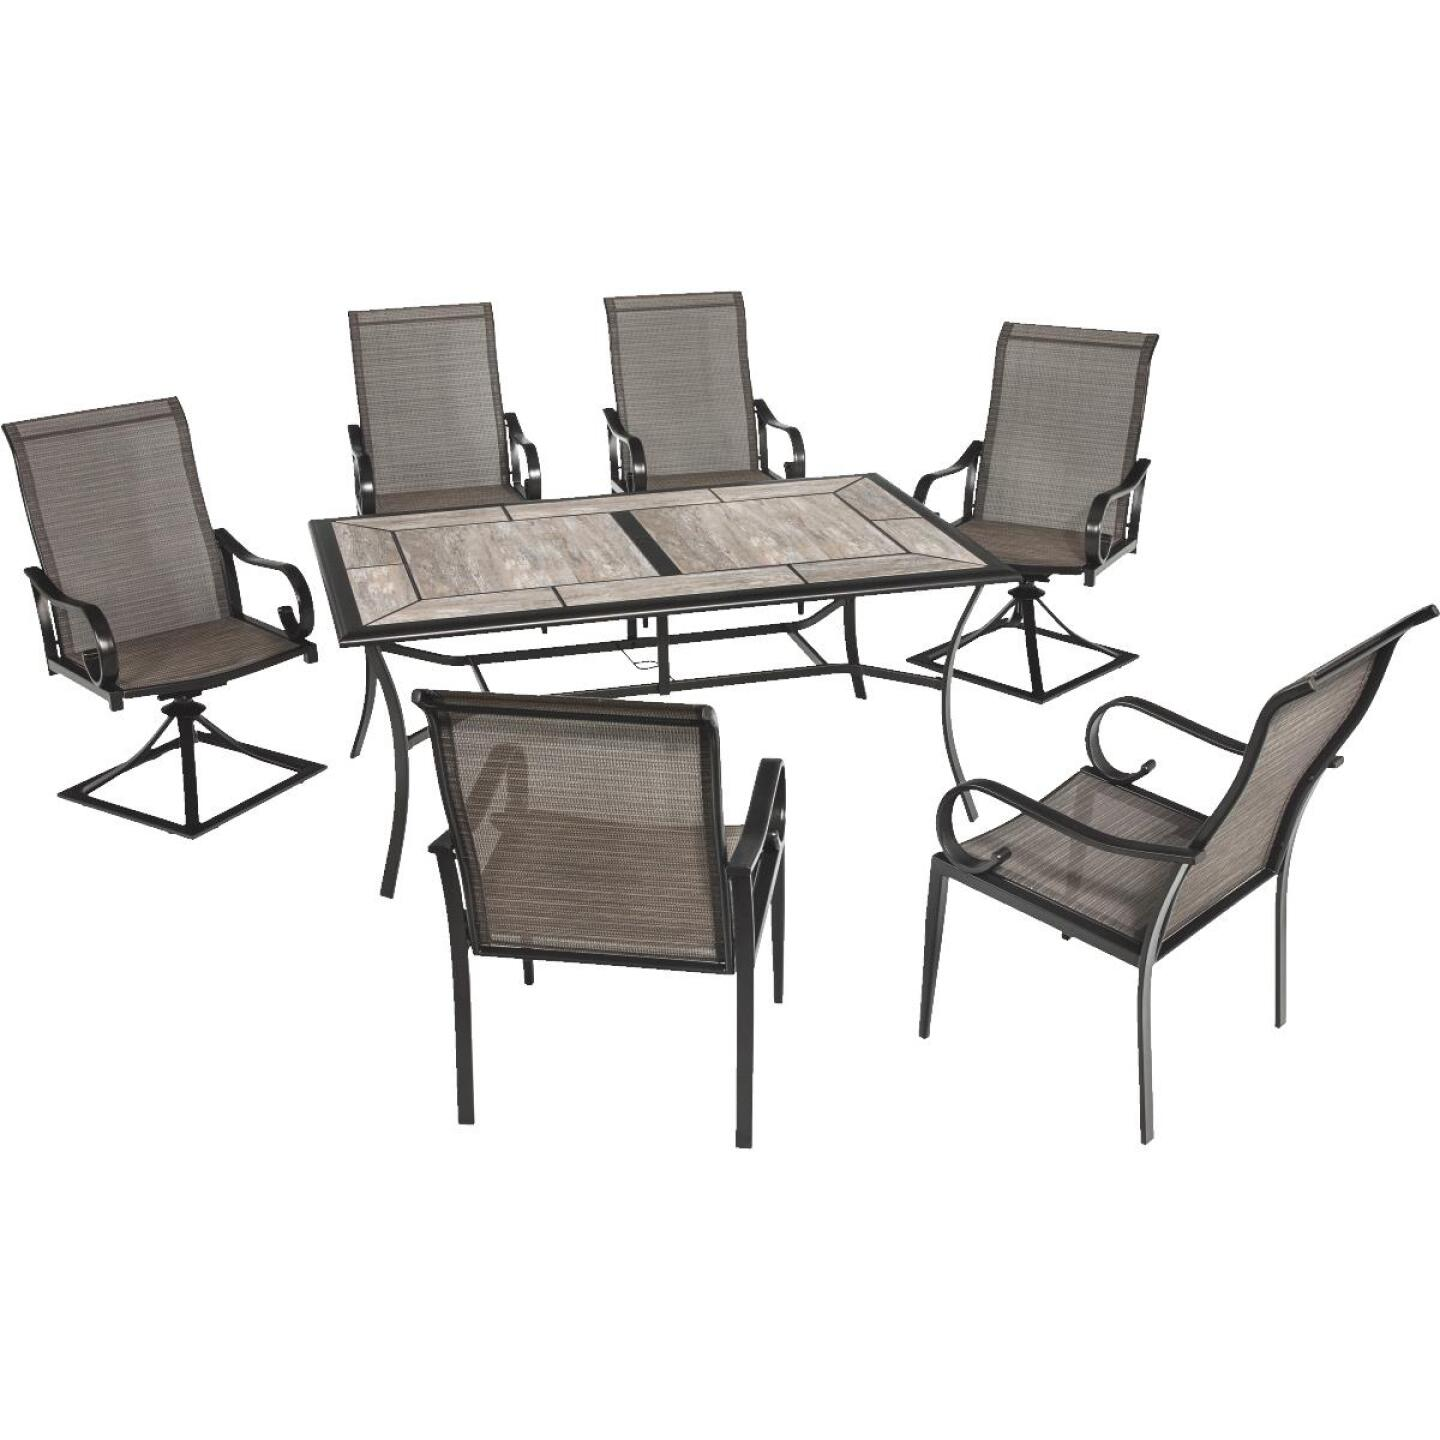 Outdoor Expressions Berkshire 7-Piece Dining Set Image 281